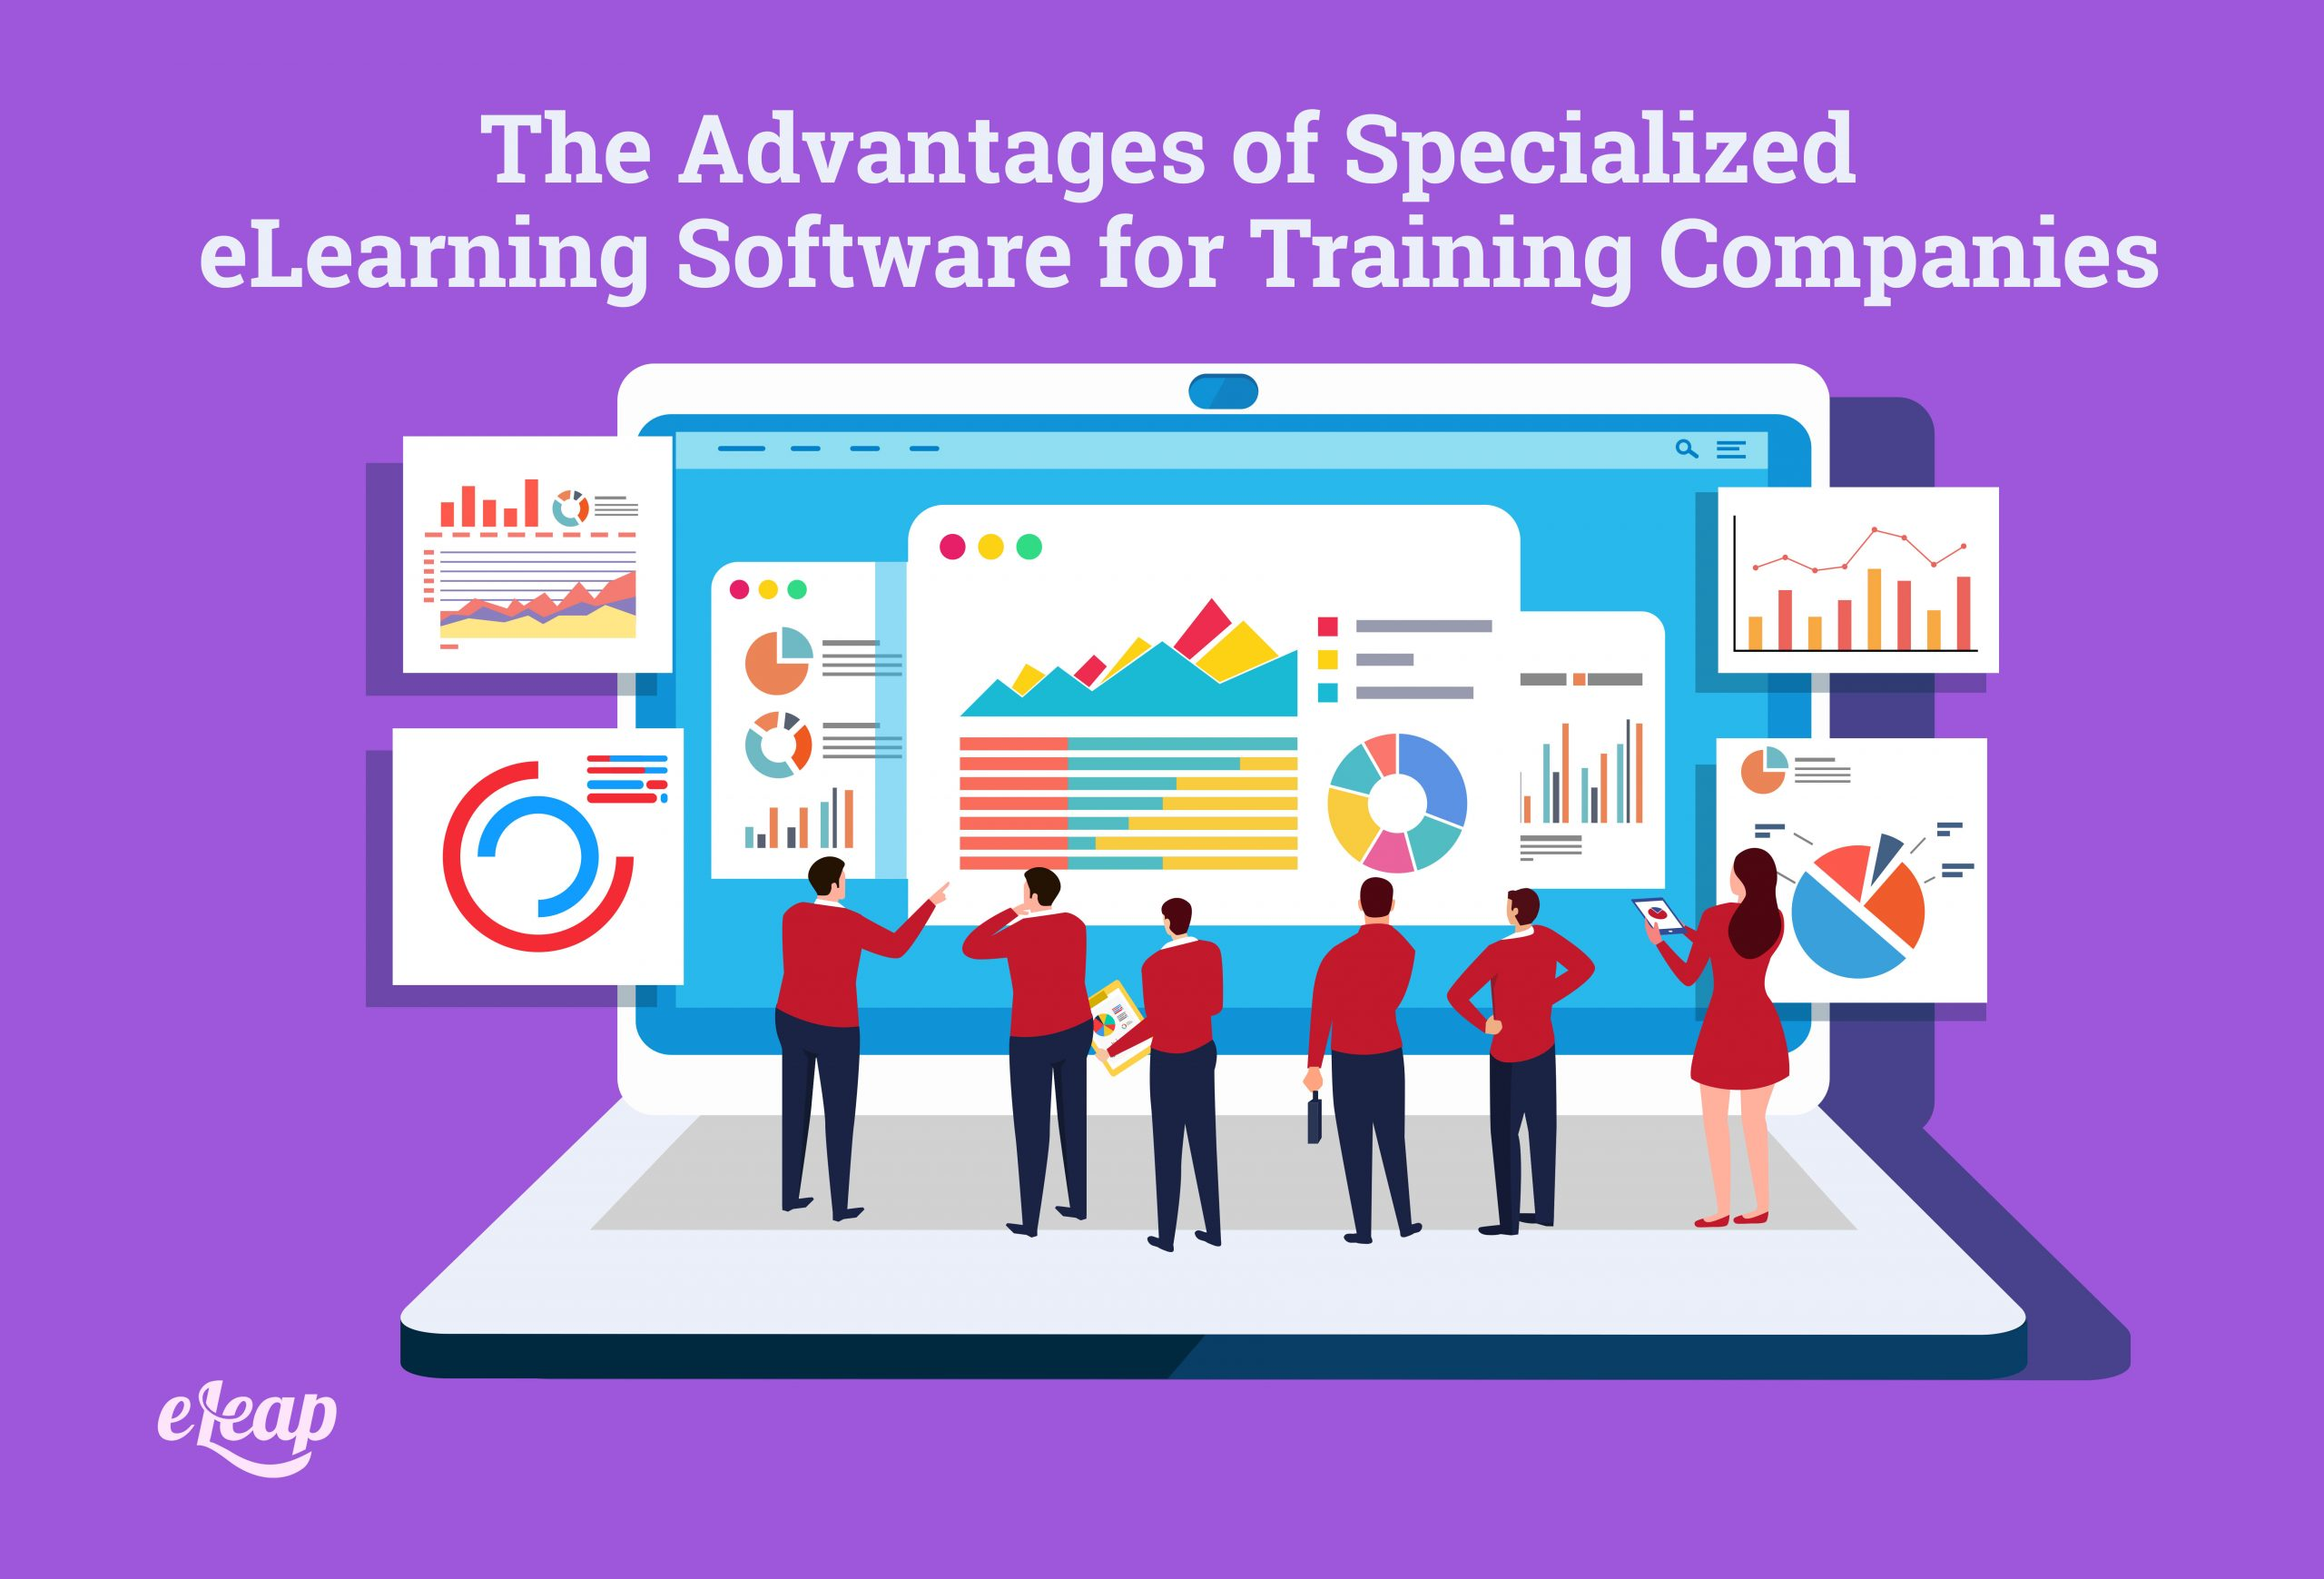 The Advantages of Specialized eLearning Software for Training Companies